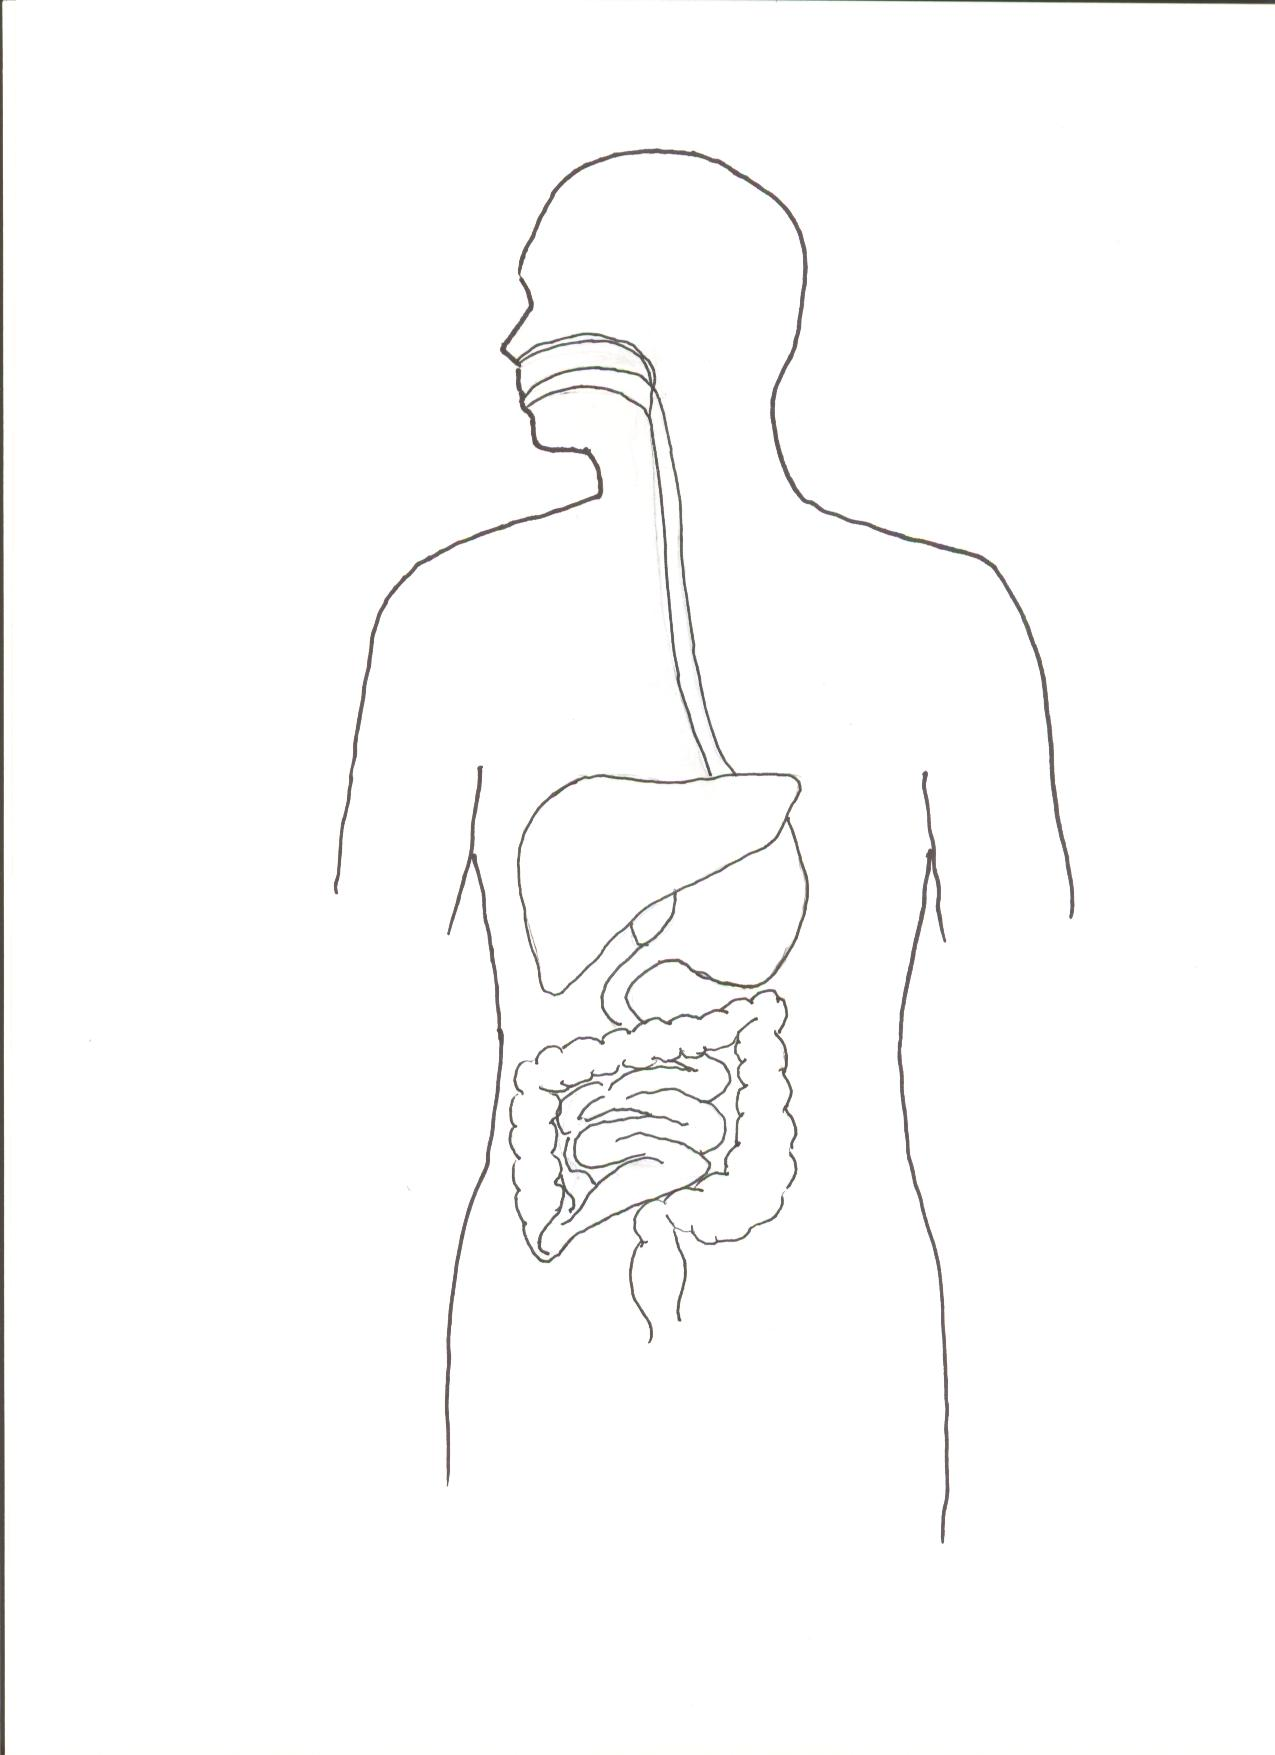 an analysis of the digestive system of a human body The human body food, nutrition & digestion food, nutrition & digestion that are released at various points along the digestive system substances which our body needs cannot be absorbed into our blood until they have been broken down digestive system diagram the digestive process is.